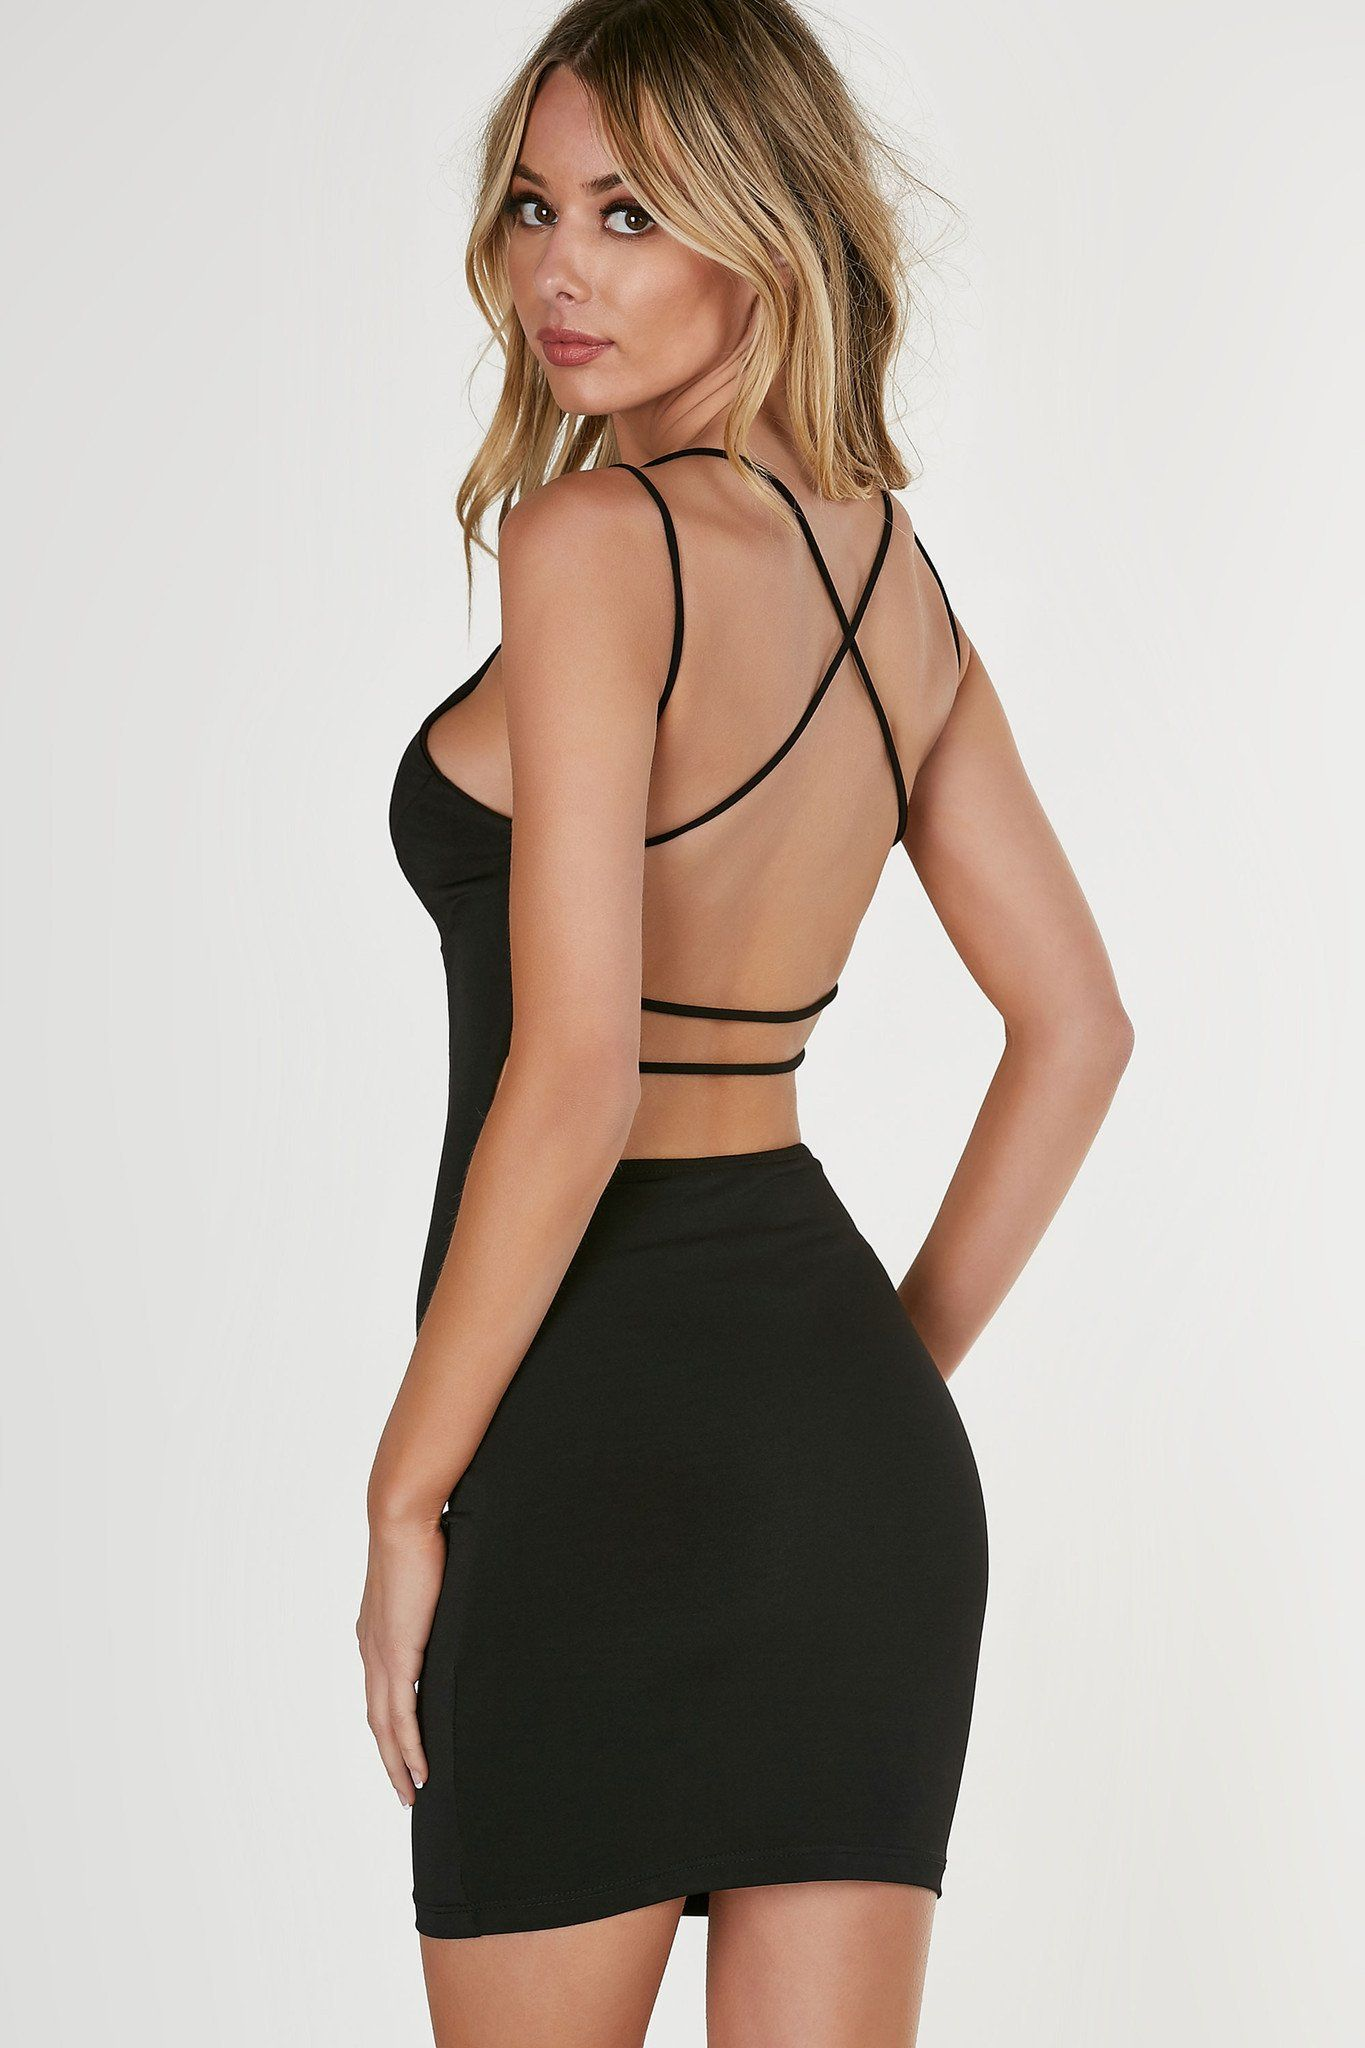 V-neck sleeveless dress with strappy detailing and open back. Form ...